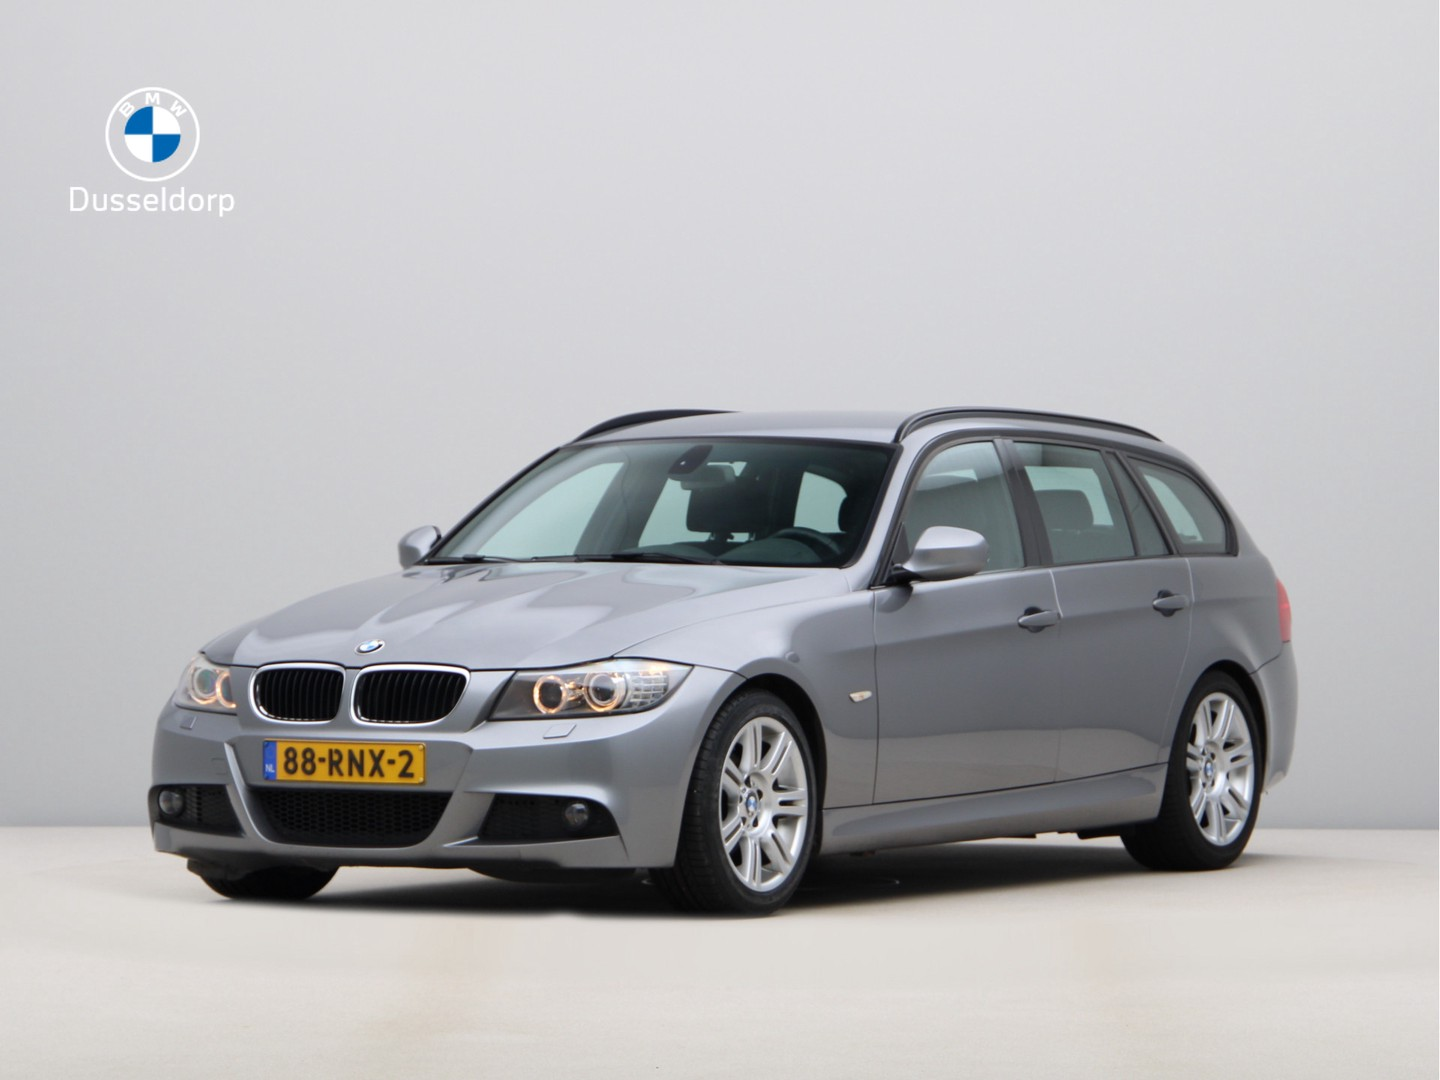 Bmw 3 serie Touring 318i m-sport edition - navigatie - trekhaak - pdc